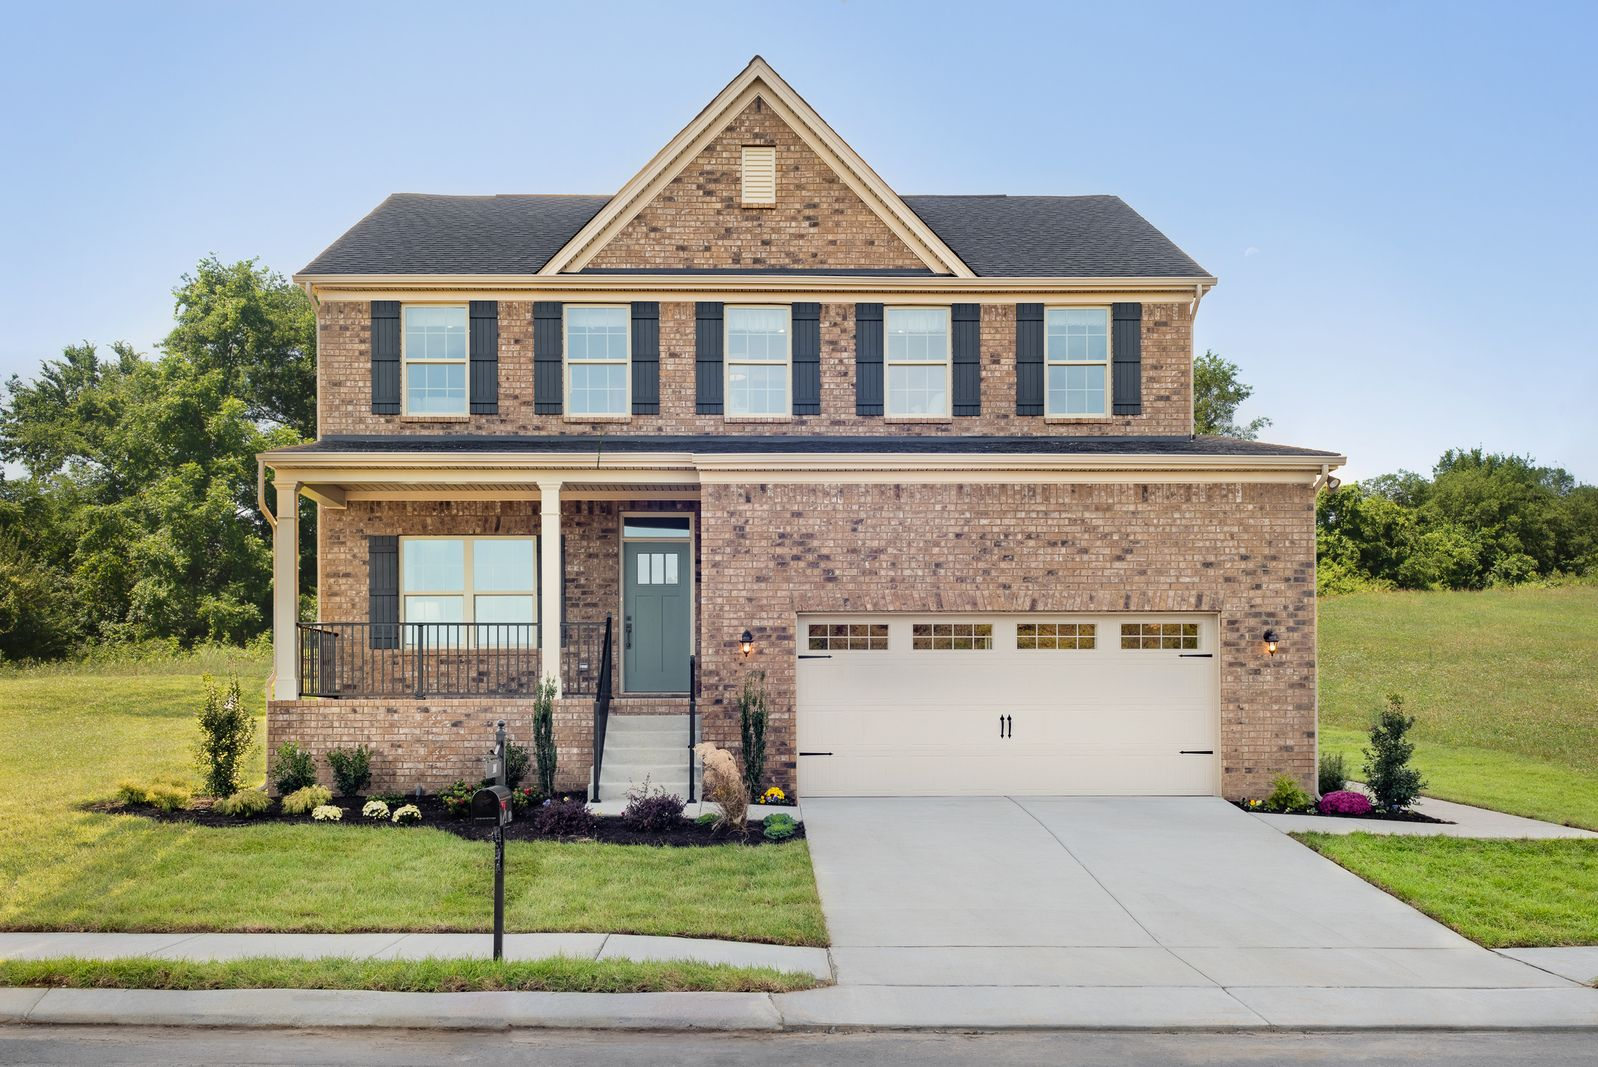 COPPER RIDGE - NEW HOMESITES COMING THIS FALL:Brick exteriors and cul-de-sac homesites in a desirable Spring Hill location walkable to Longview Rec Center, shopping, and dining - from the mid $500s.Join the VIP list today!